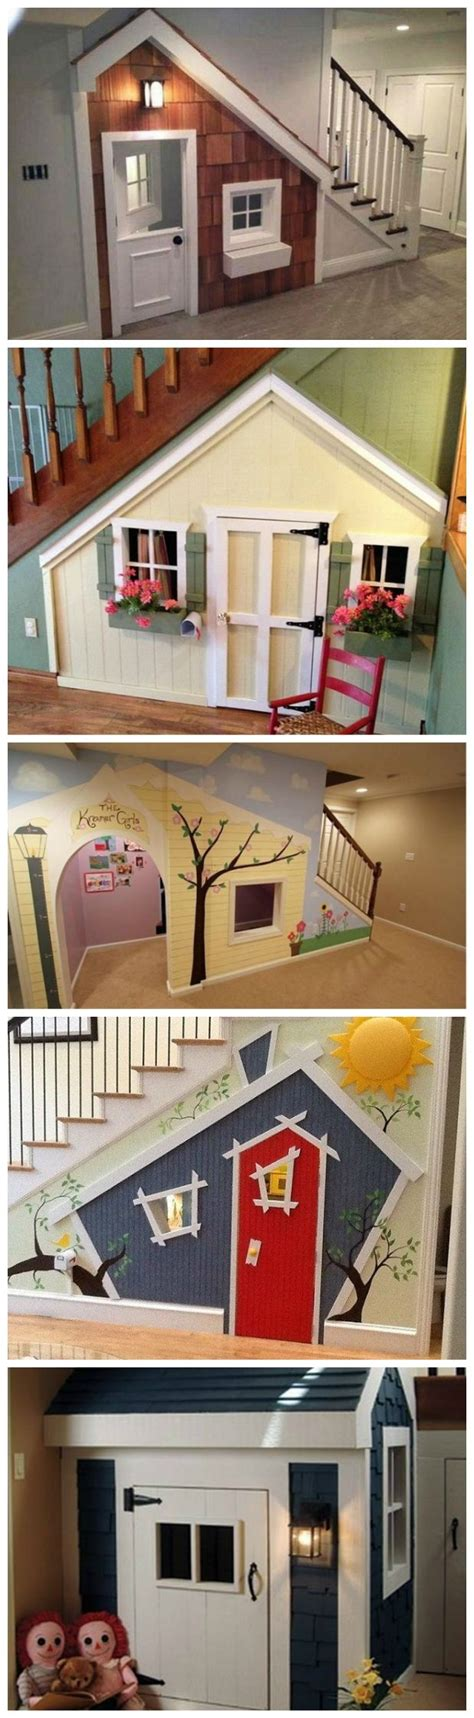 Make Your Basement Ideas So Cool Indoor Playhouse Stairs Organizing Pinterest Indoor Playhouse Kid And Creepy Dolls